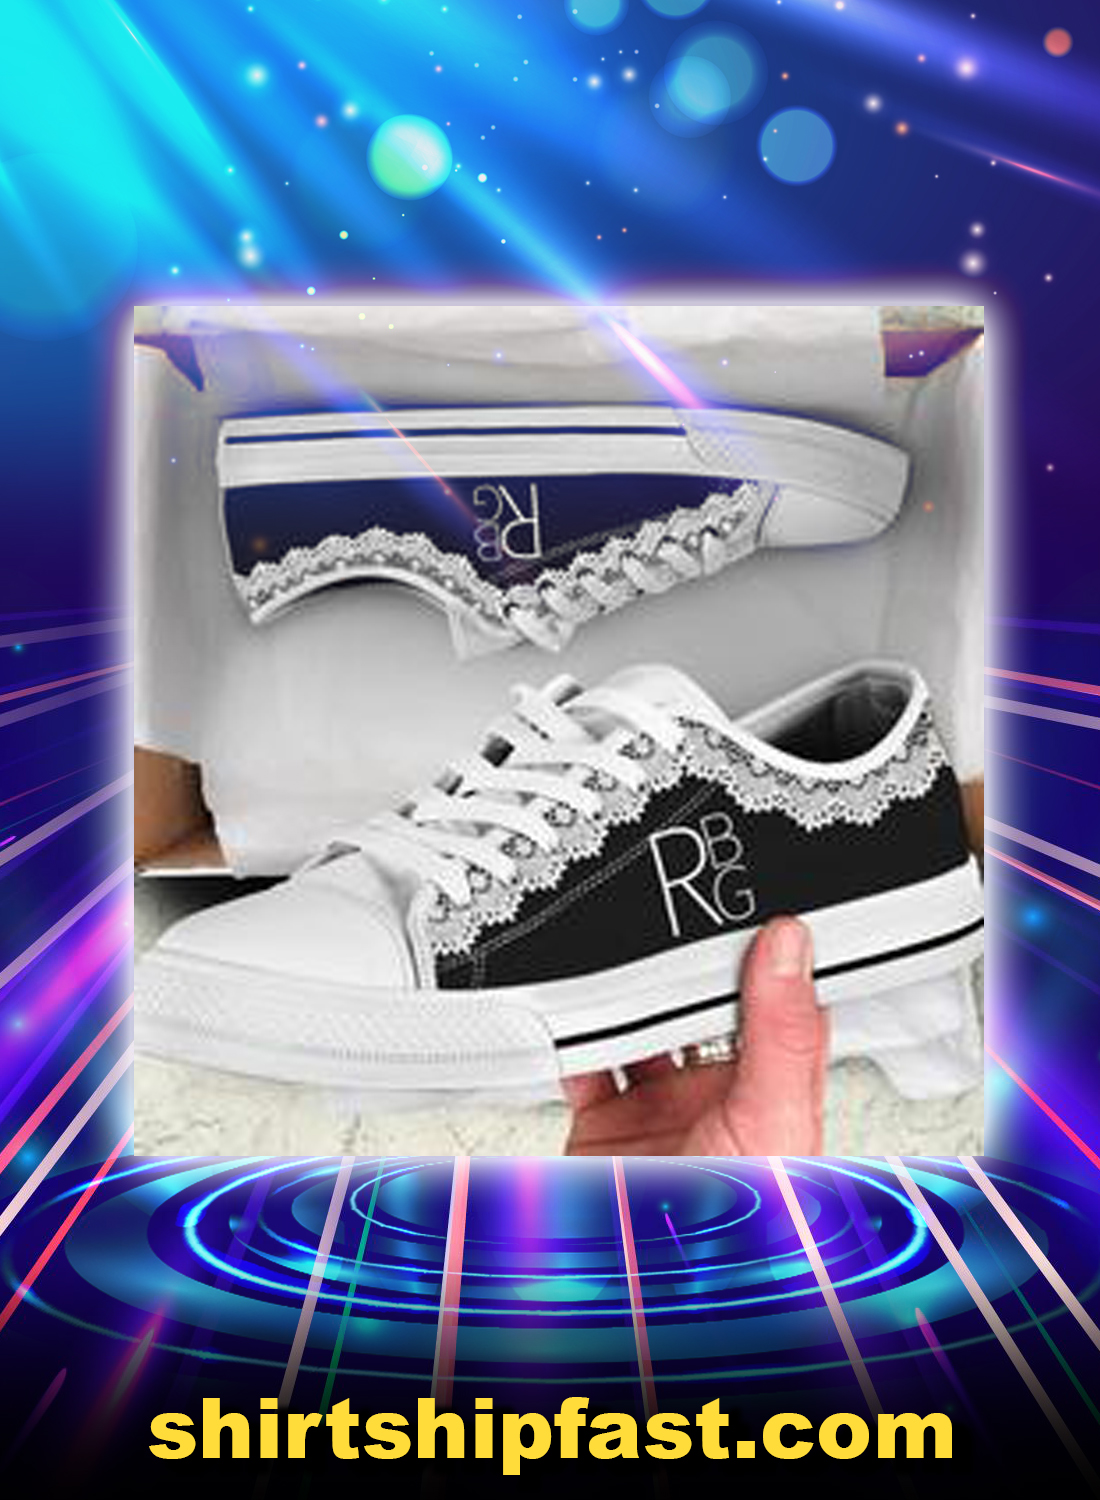 RBG collar low top shoes - Picture 1